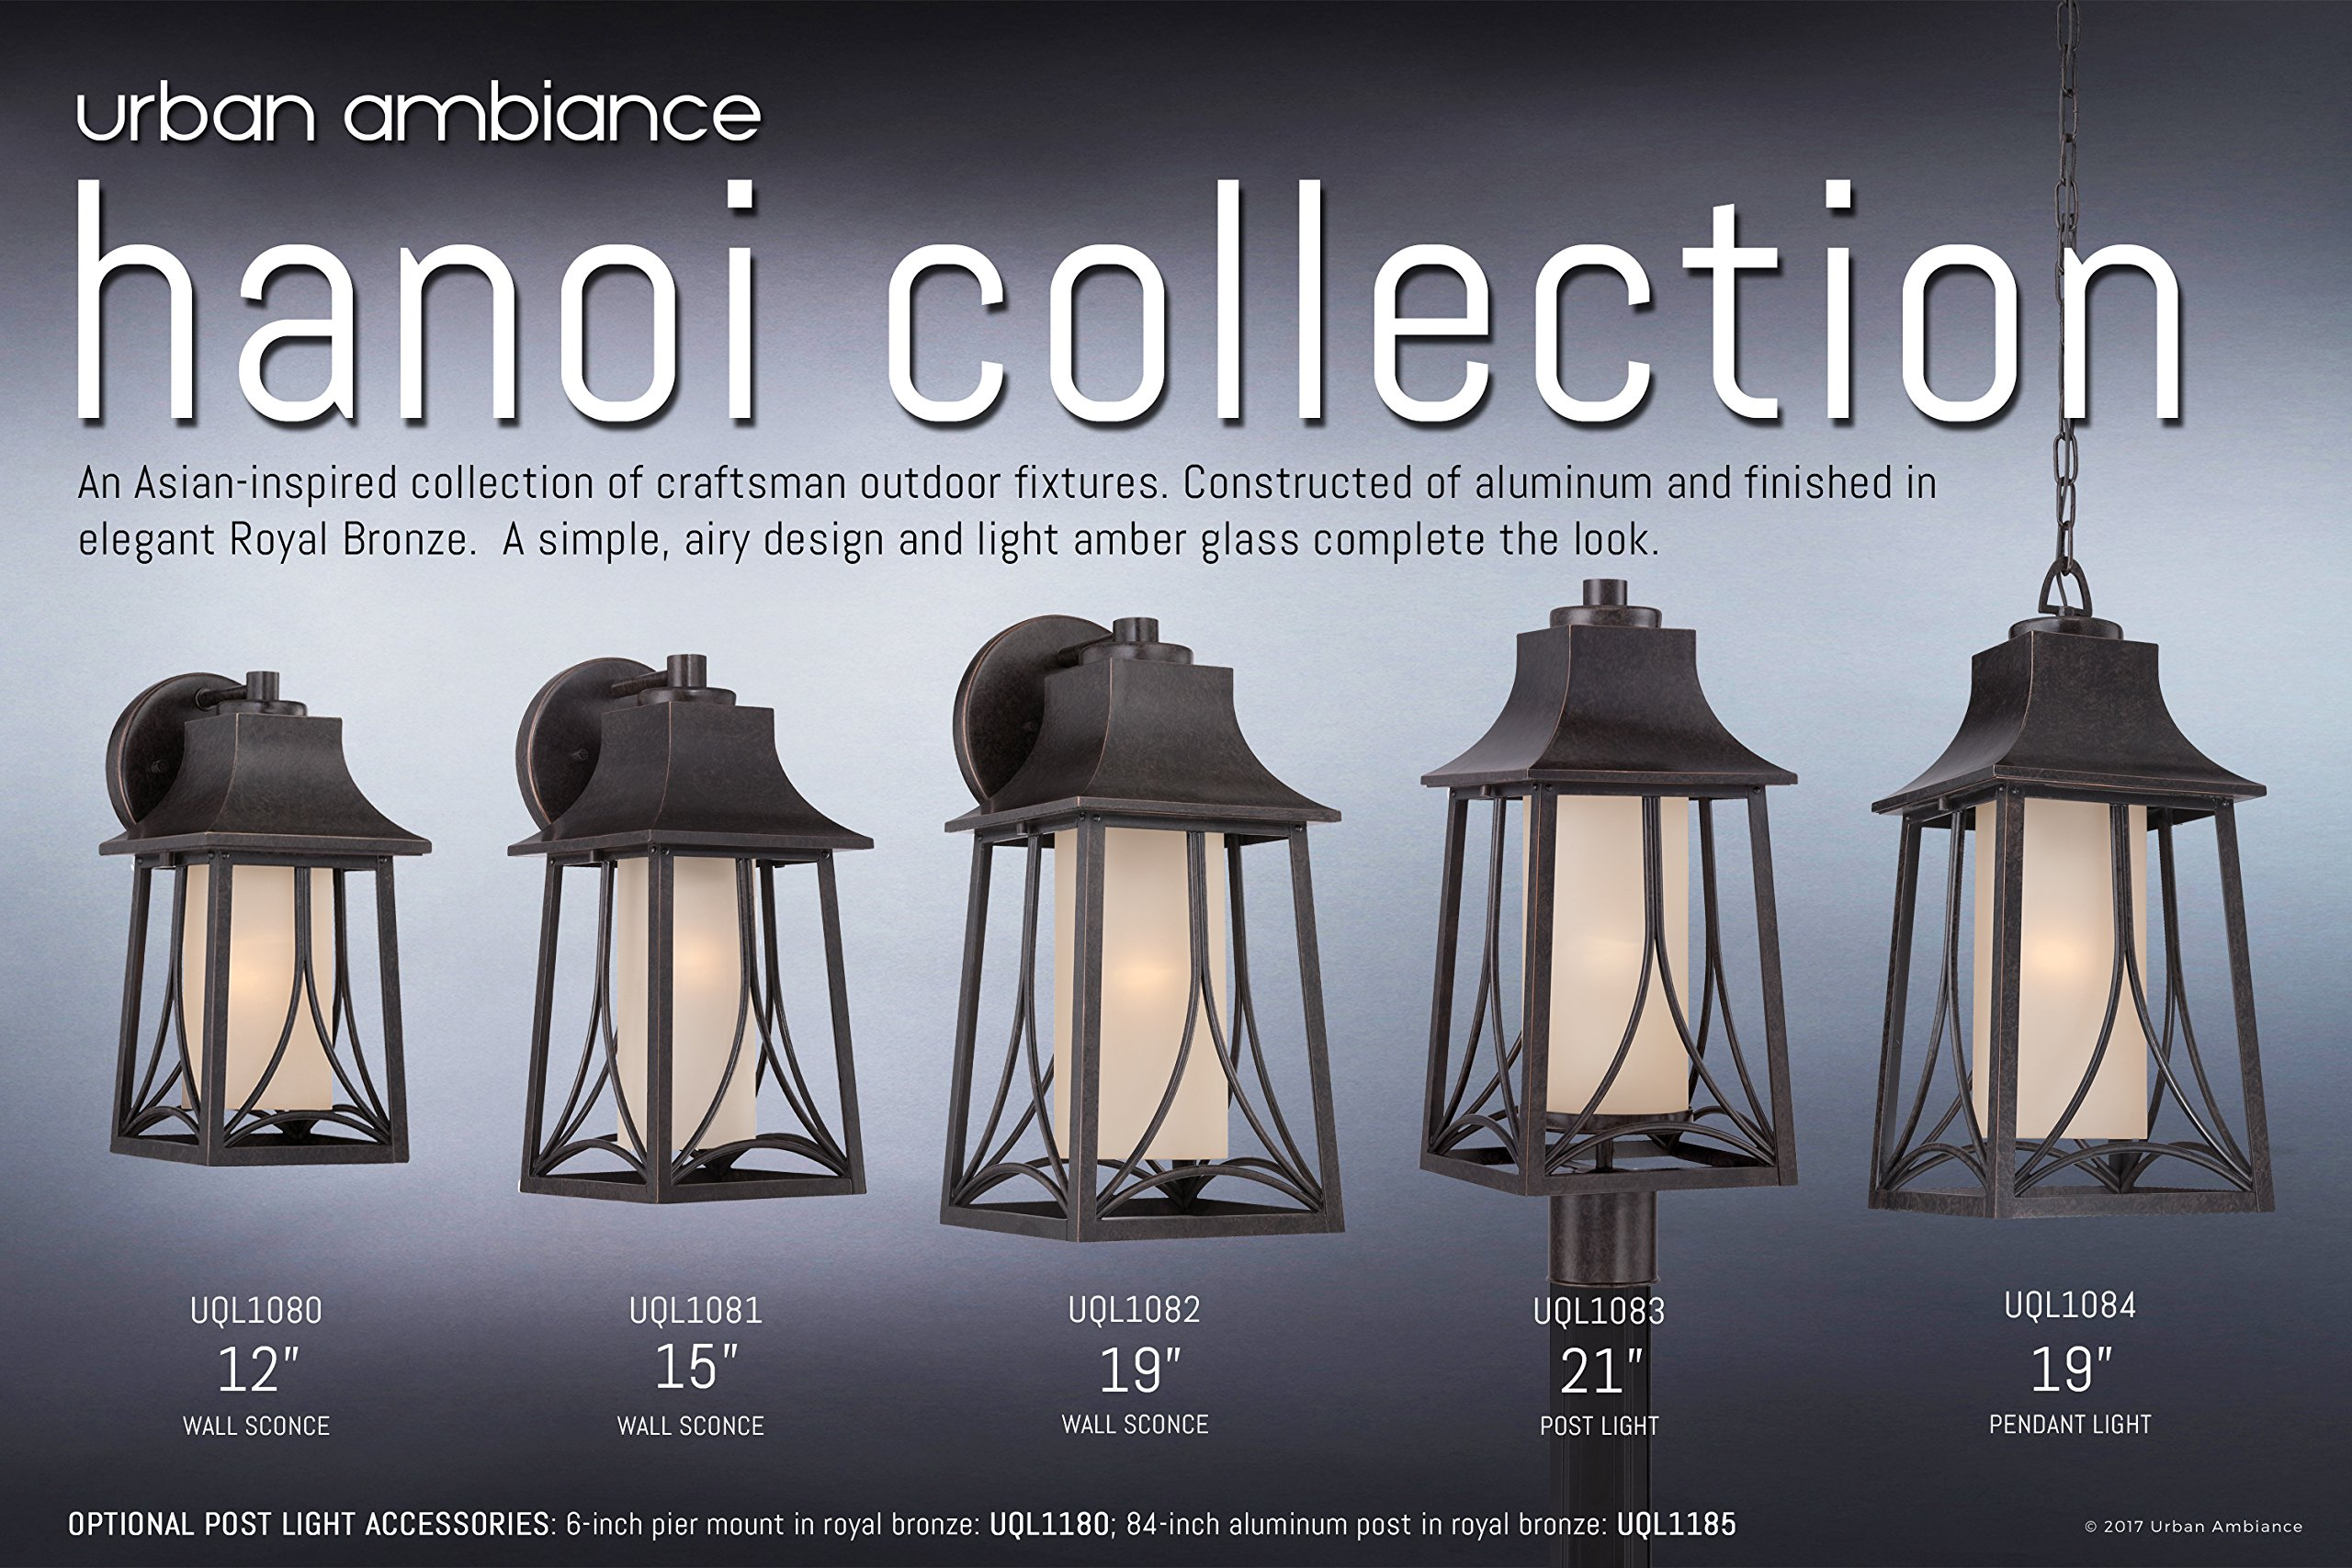 Luxury Asian Outdoor Post Light, Large Size: 21''H x 8.5''W, with Craftsman Style Elements, Airy and Simplistic Design, Beautiful Royal Bronze Finish and Light Amber Glass, UQL1083 by Urban Ambiance by Urban Ambiance (Image #6)